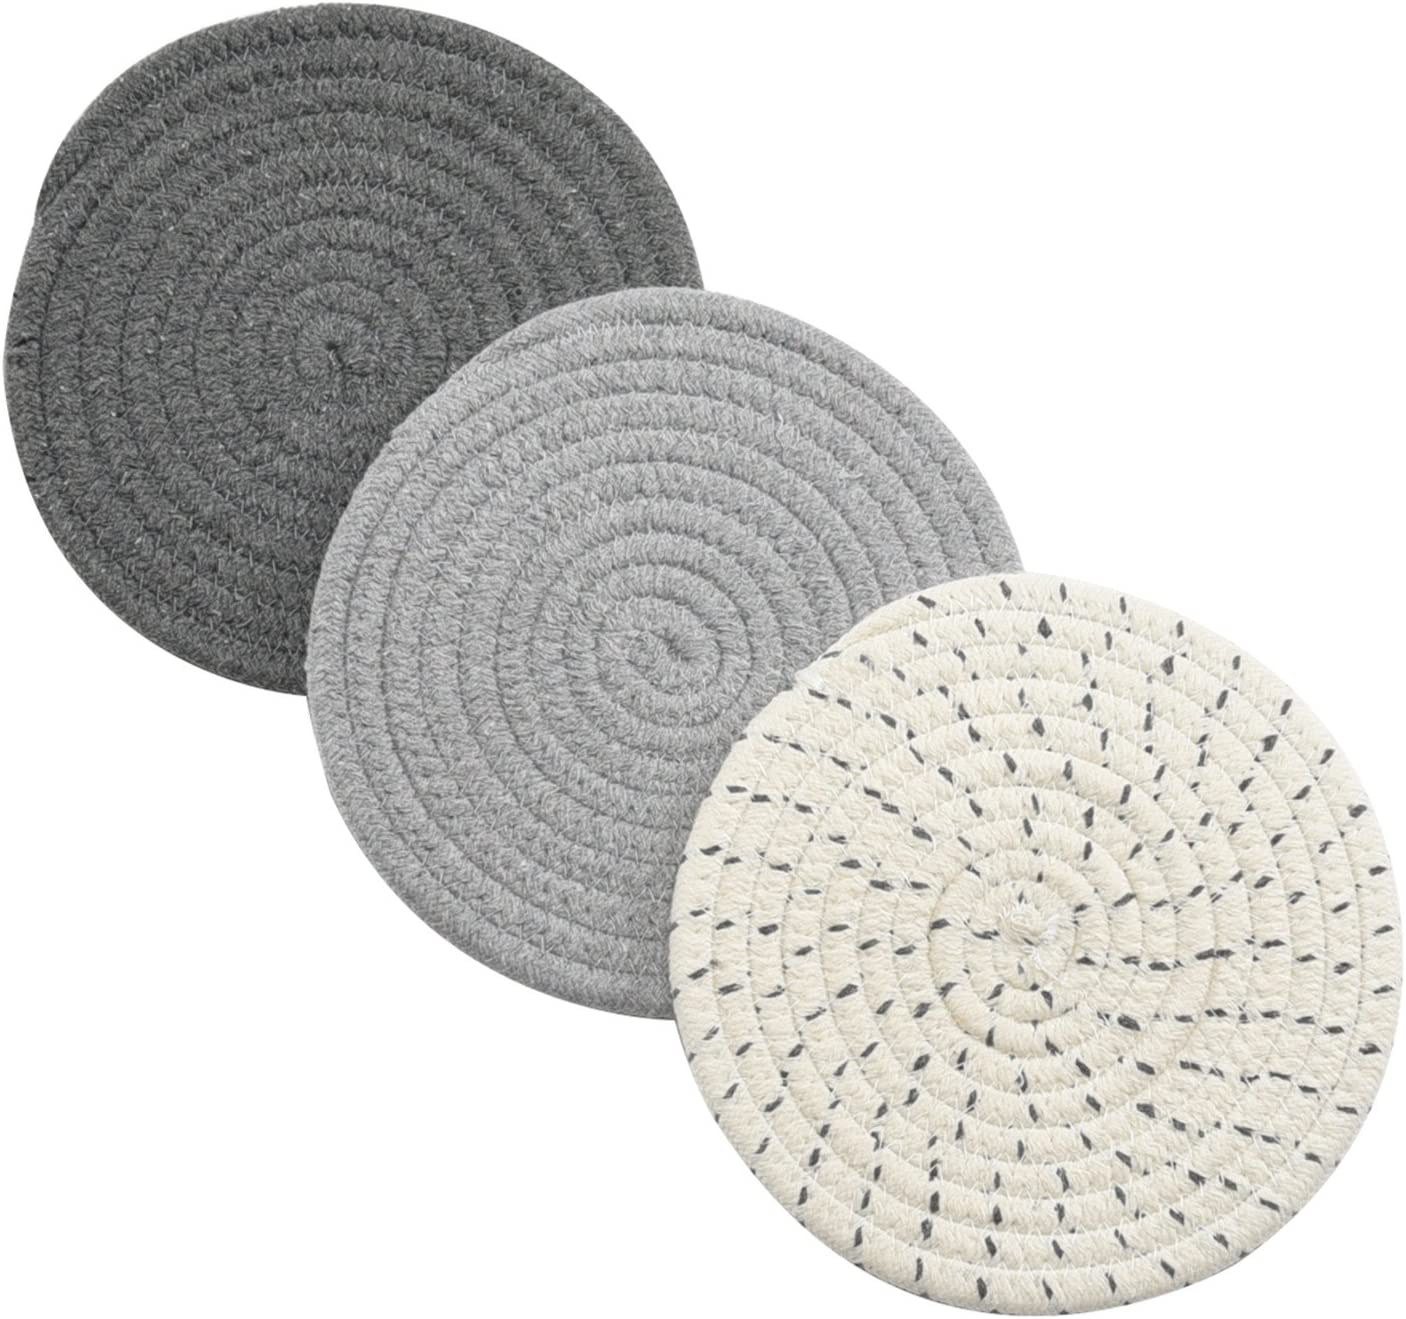 Potholders Set Trivets Set 100% Pure Cotton Thread Weave Hot Pot Holders Set (Set of 3) Stylish Coasters, Hot Pads, Hot Mats, Spoon Rest For Cooking and Baking by Diameter 7 Inches (Gray): Kitchen & Dining